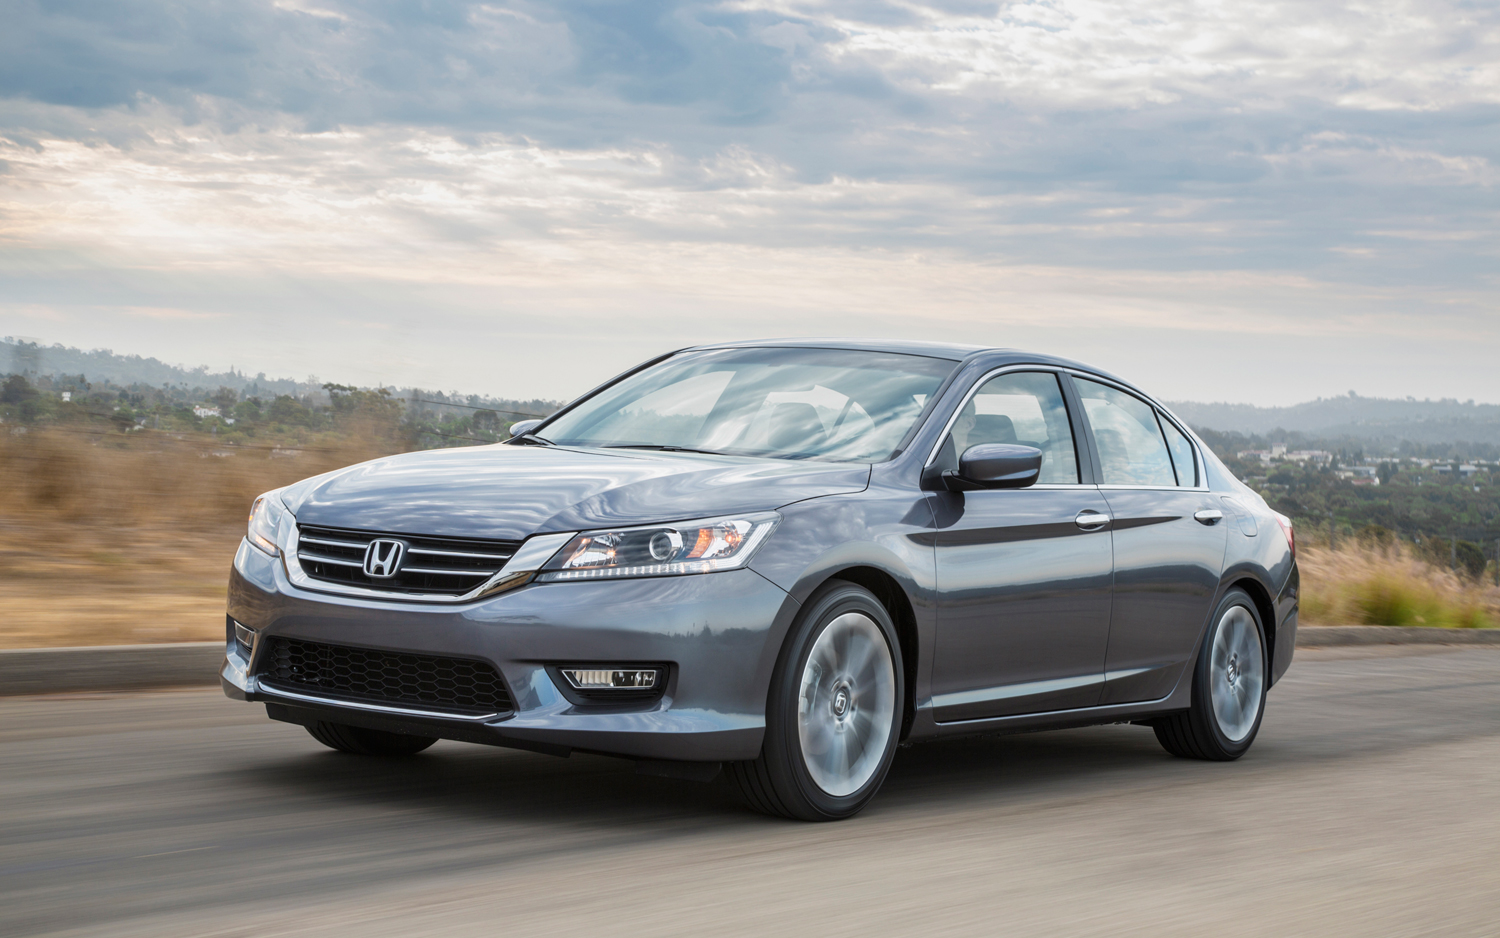 2013-honda-accord-sport-sedan-front-three-quarters-in-motion